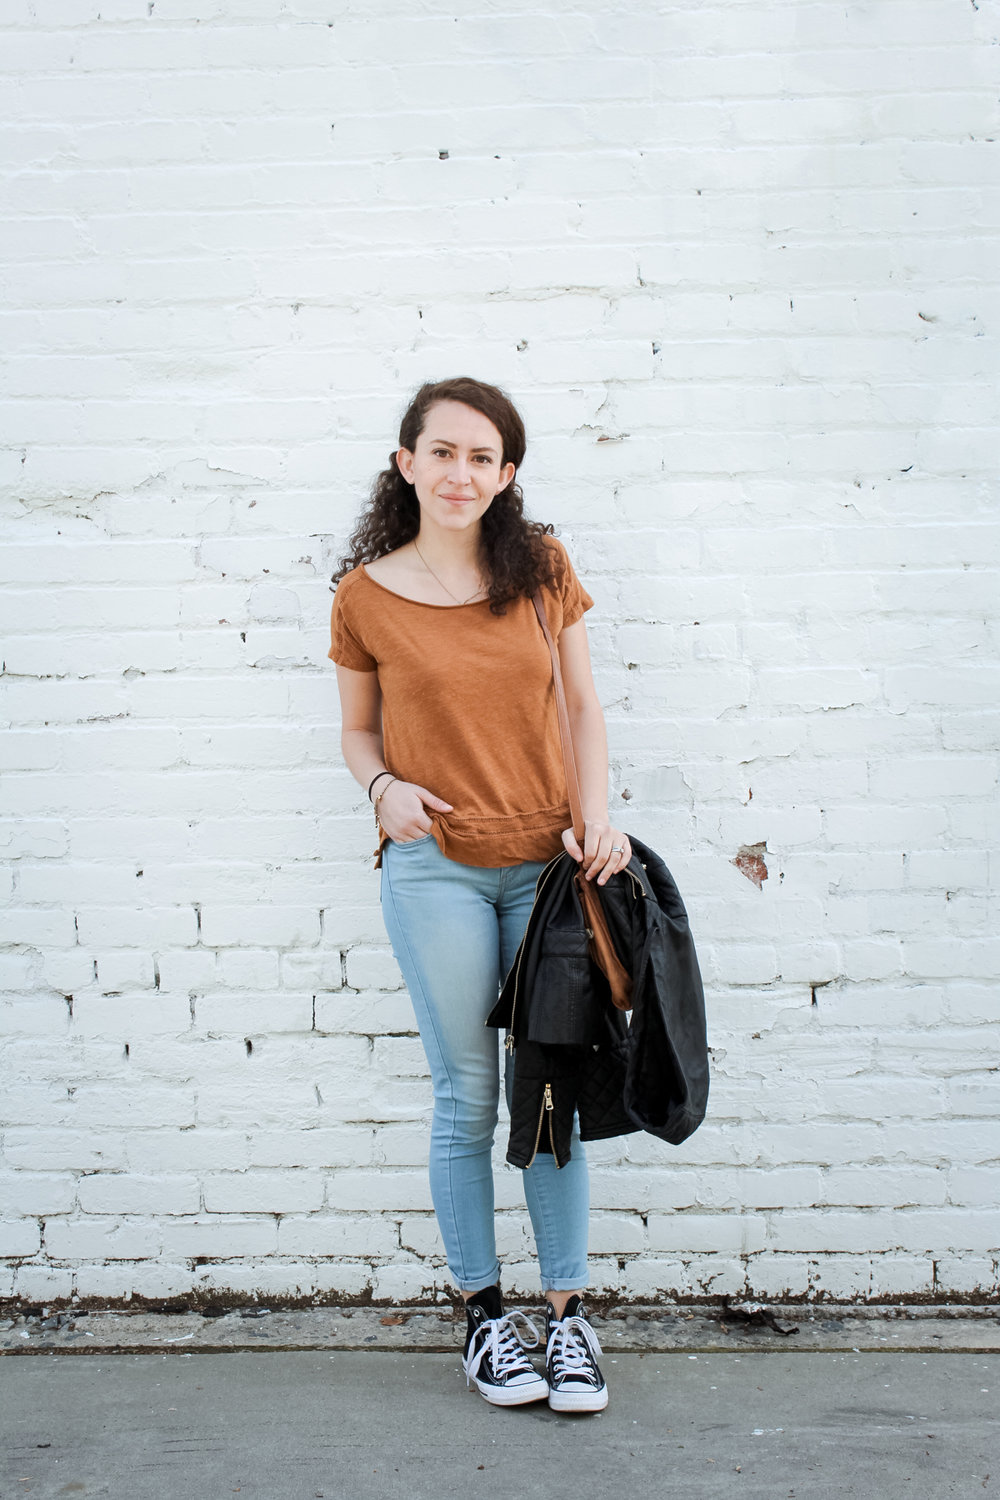 my outfit for day 9 of the unfancy remix/spring 10x10 capsule wardrobe challenge was my thrifted copper t shirt with light wash skinny jeans and high top converse. i added my black faux leather jacket and fossil crossbody bag to the look | tintedgreen